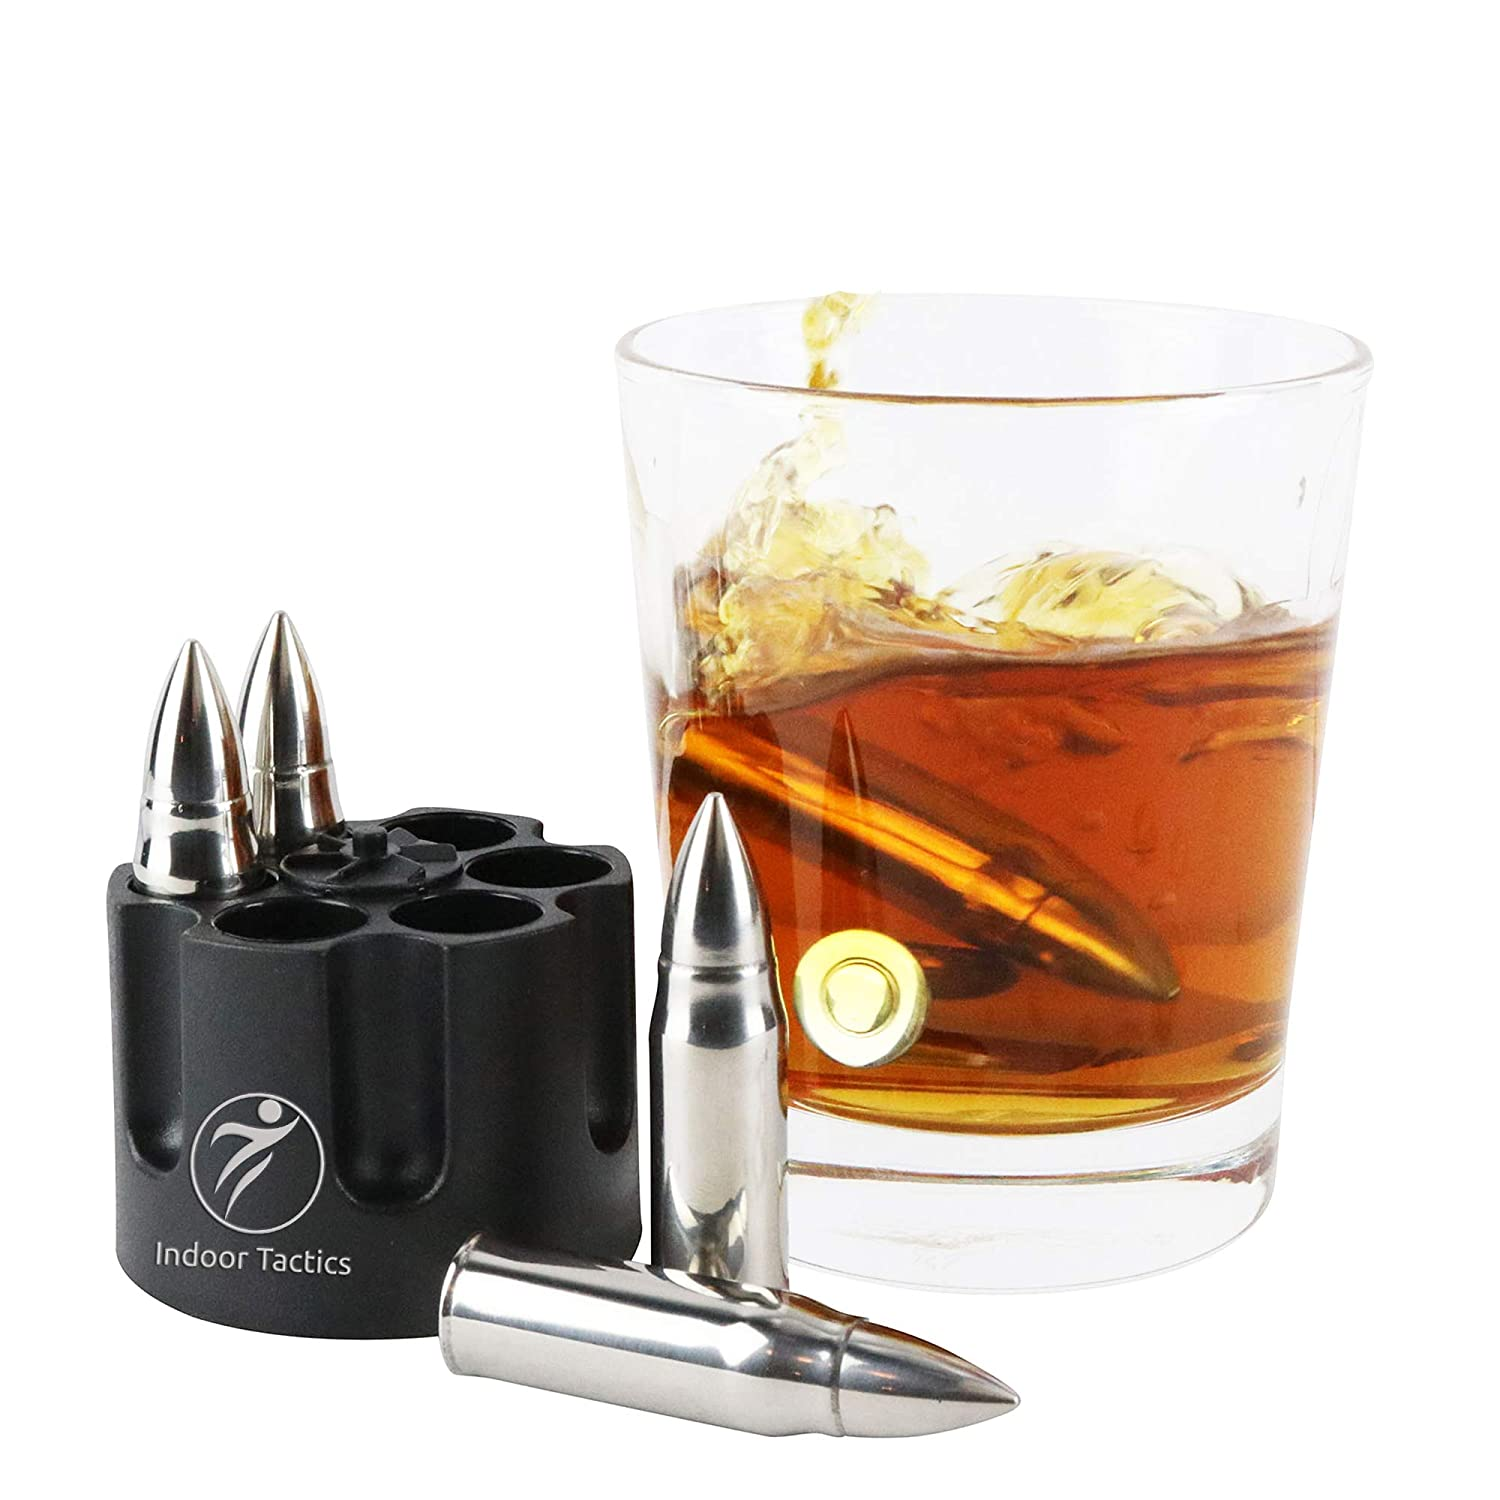 "WHISKEY BULLET STONES WITH BASE - XL, 2.5"" Original Extra Large Bullet-Shaped Whiskey Chillers, Unique Revolver Freezer Base, Set of 6, Gift for Whisky, Bourbon, Scotch Lovers, Groomsmen, Military"